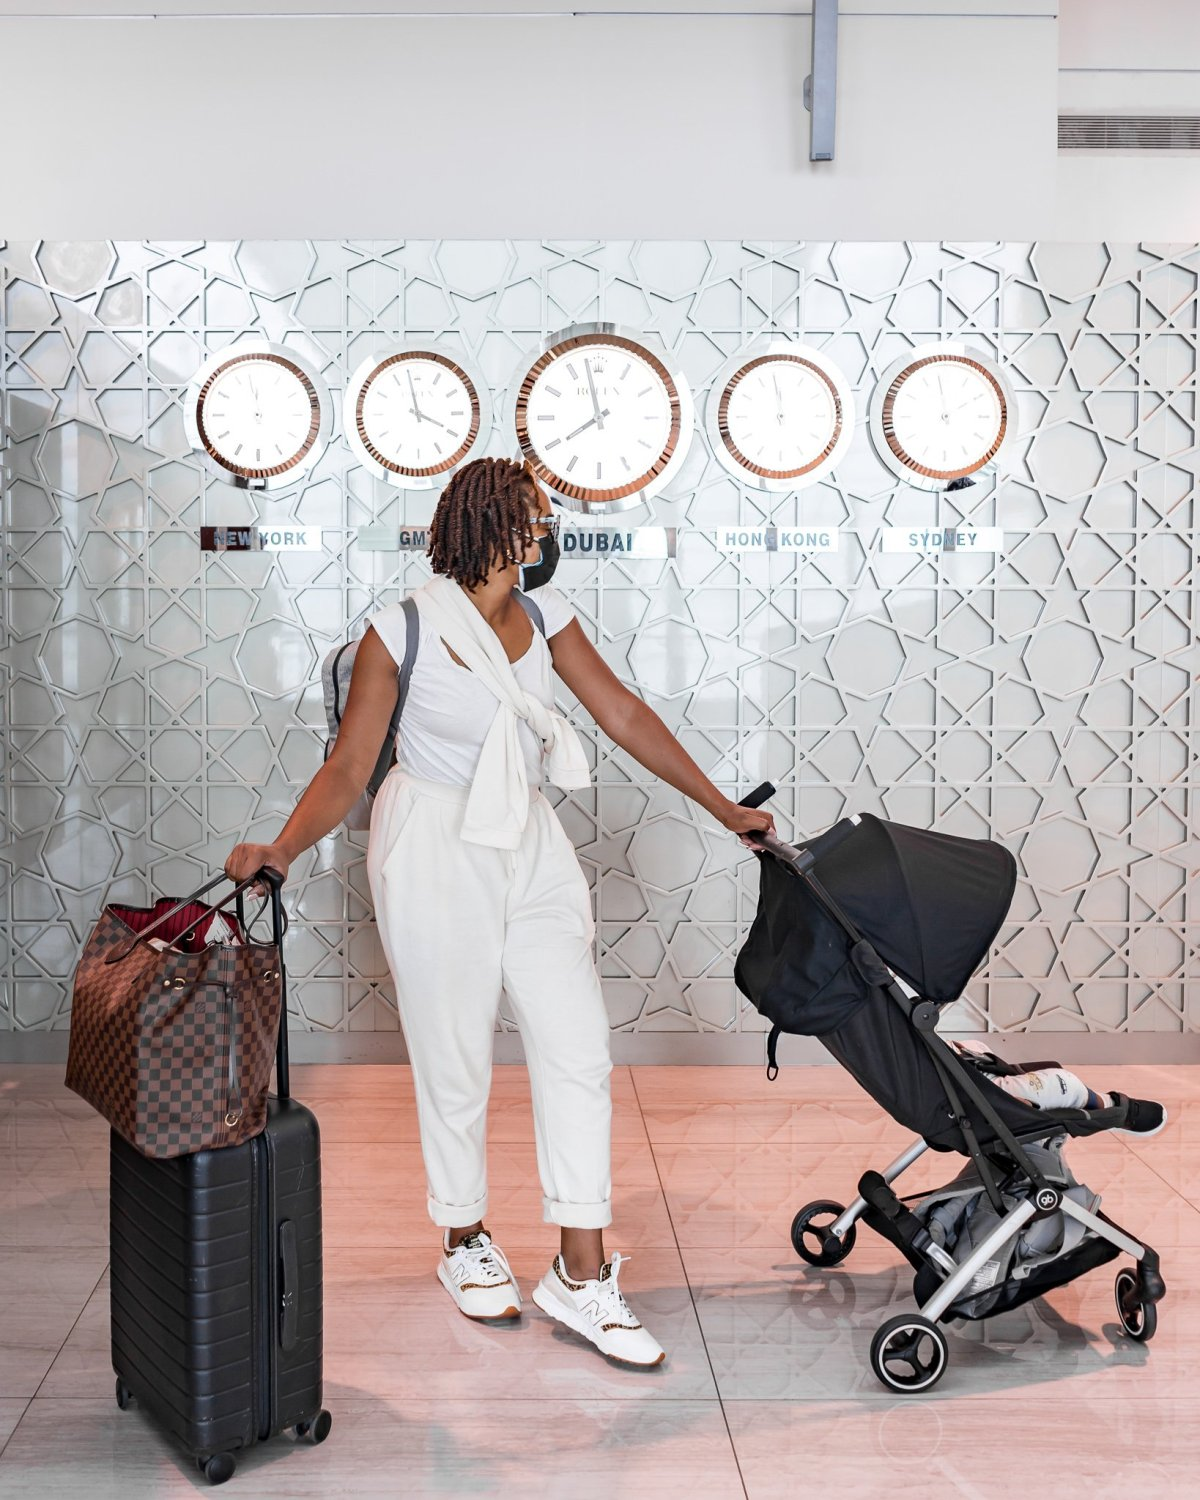 Ijeoma Kola at Dubai Airport with Away Carry On, Louis Vuitton Neverfull, and GB PockIt Stroller